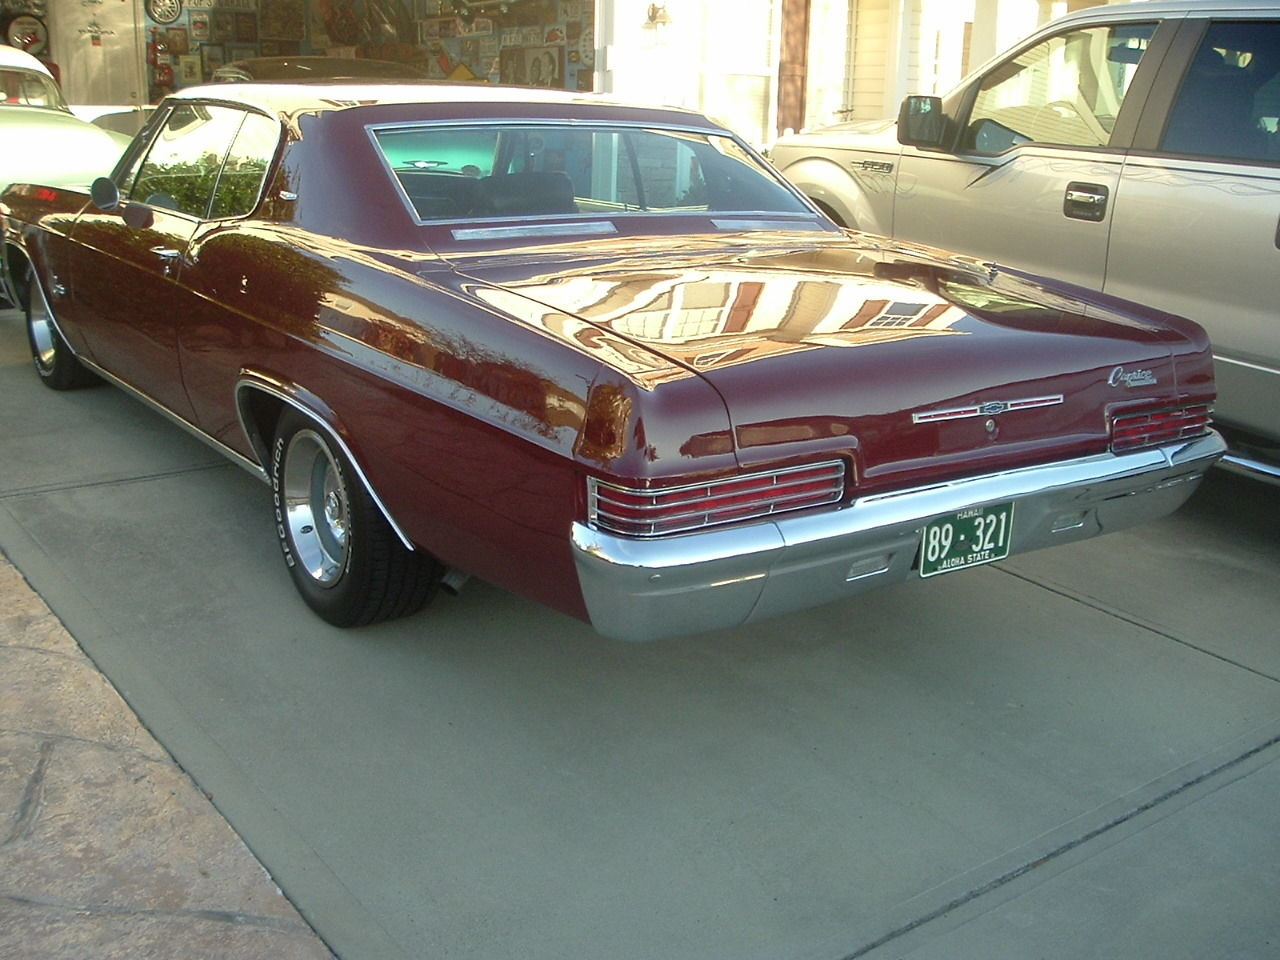 1966 Chevrolet Caprice Sport Coupe 327 Motor200r Overdriveair Cond Chevy For Sale